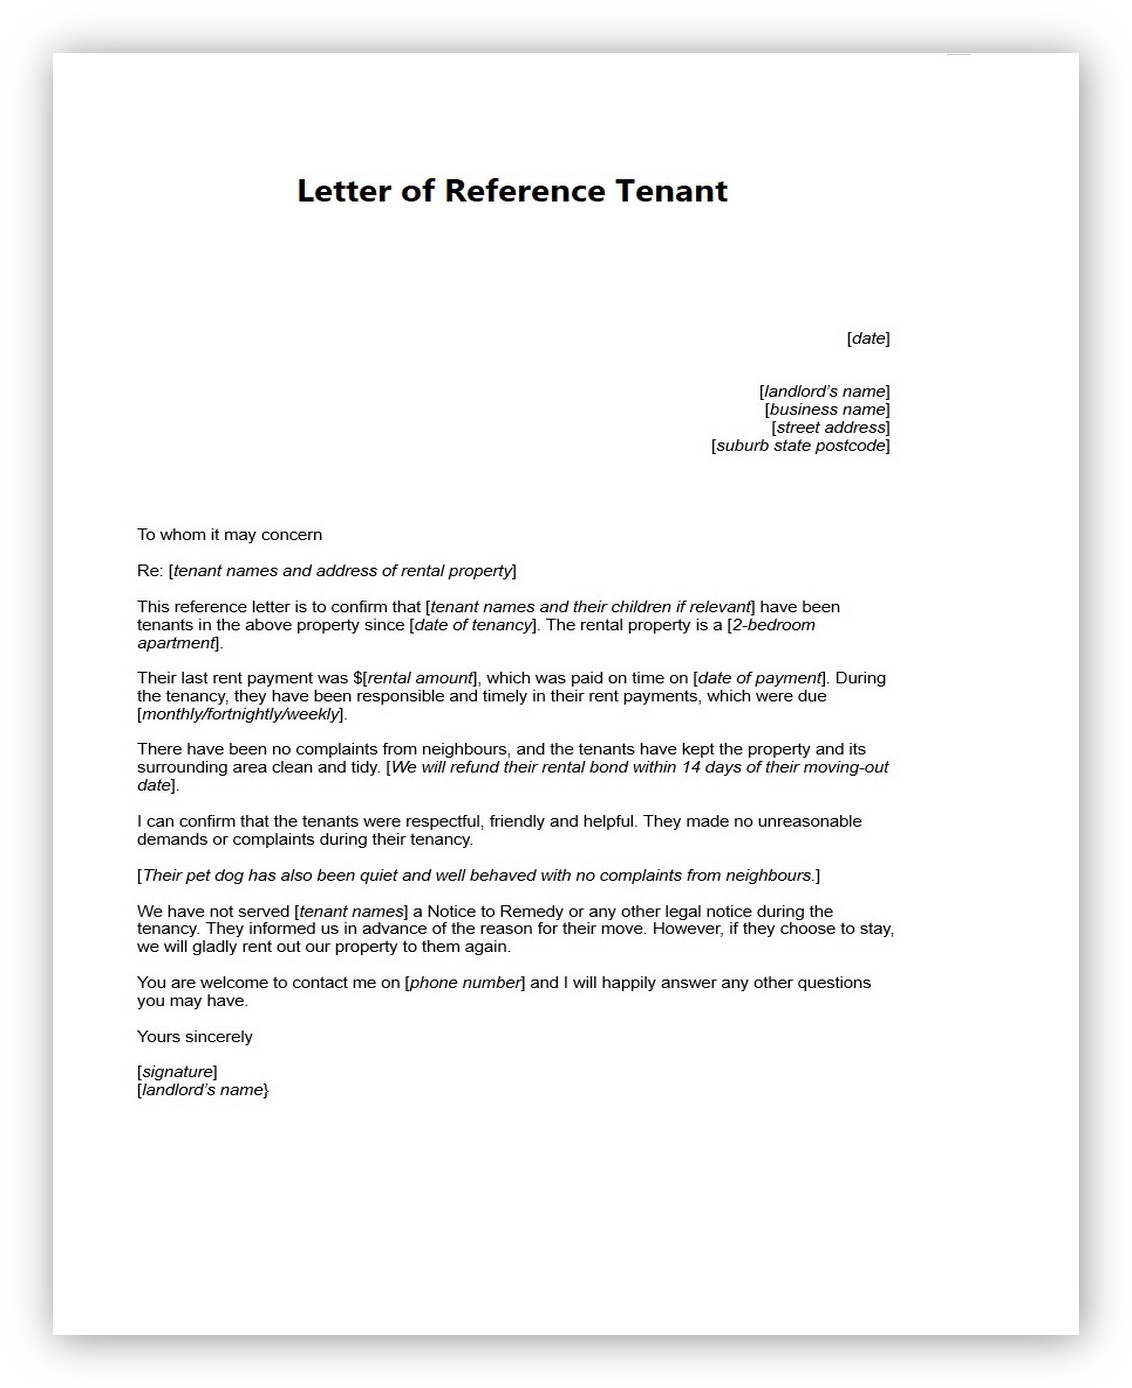 Letter of Reference Tenant06